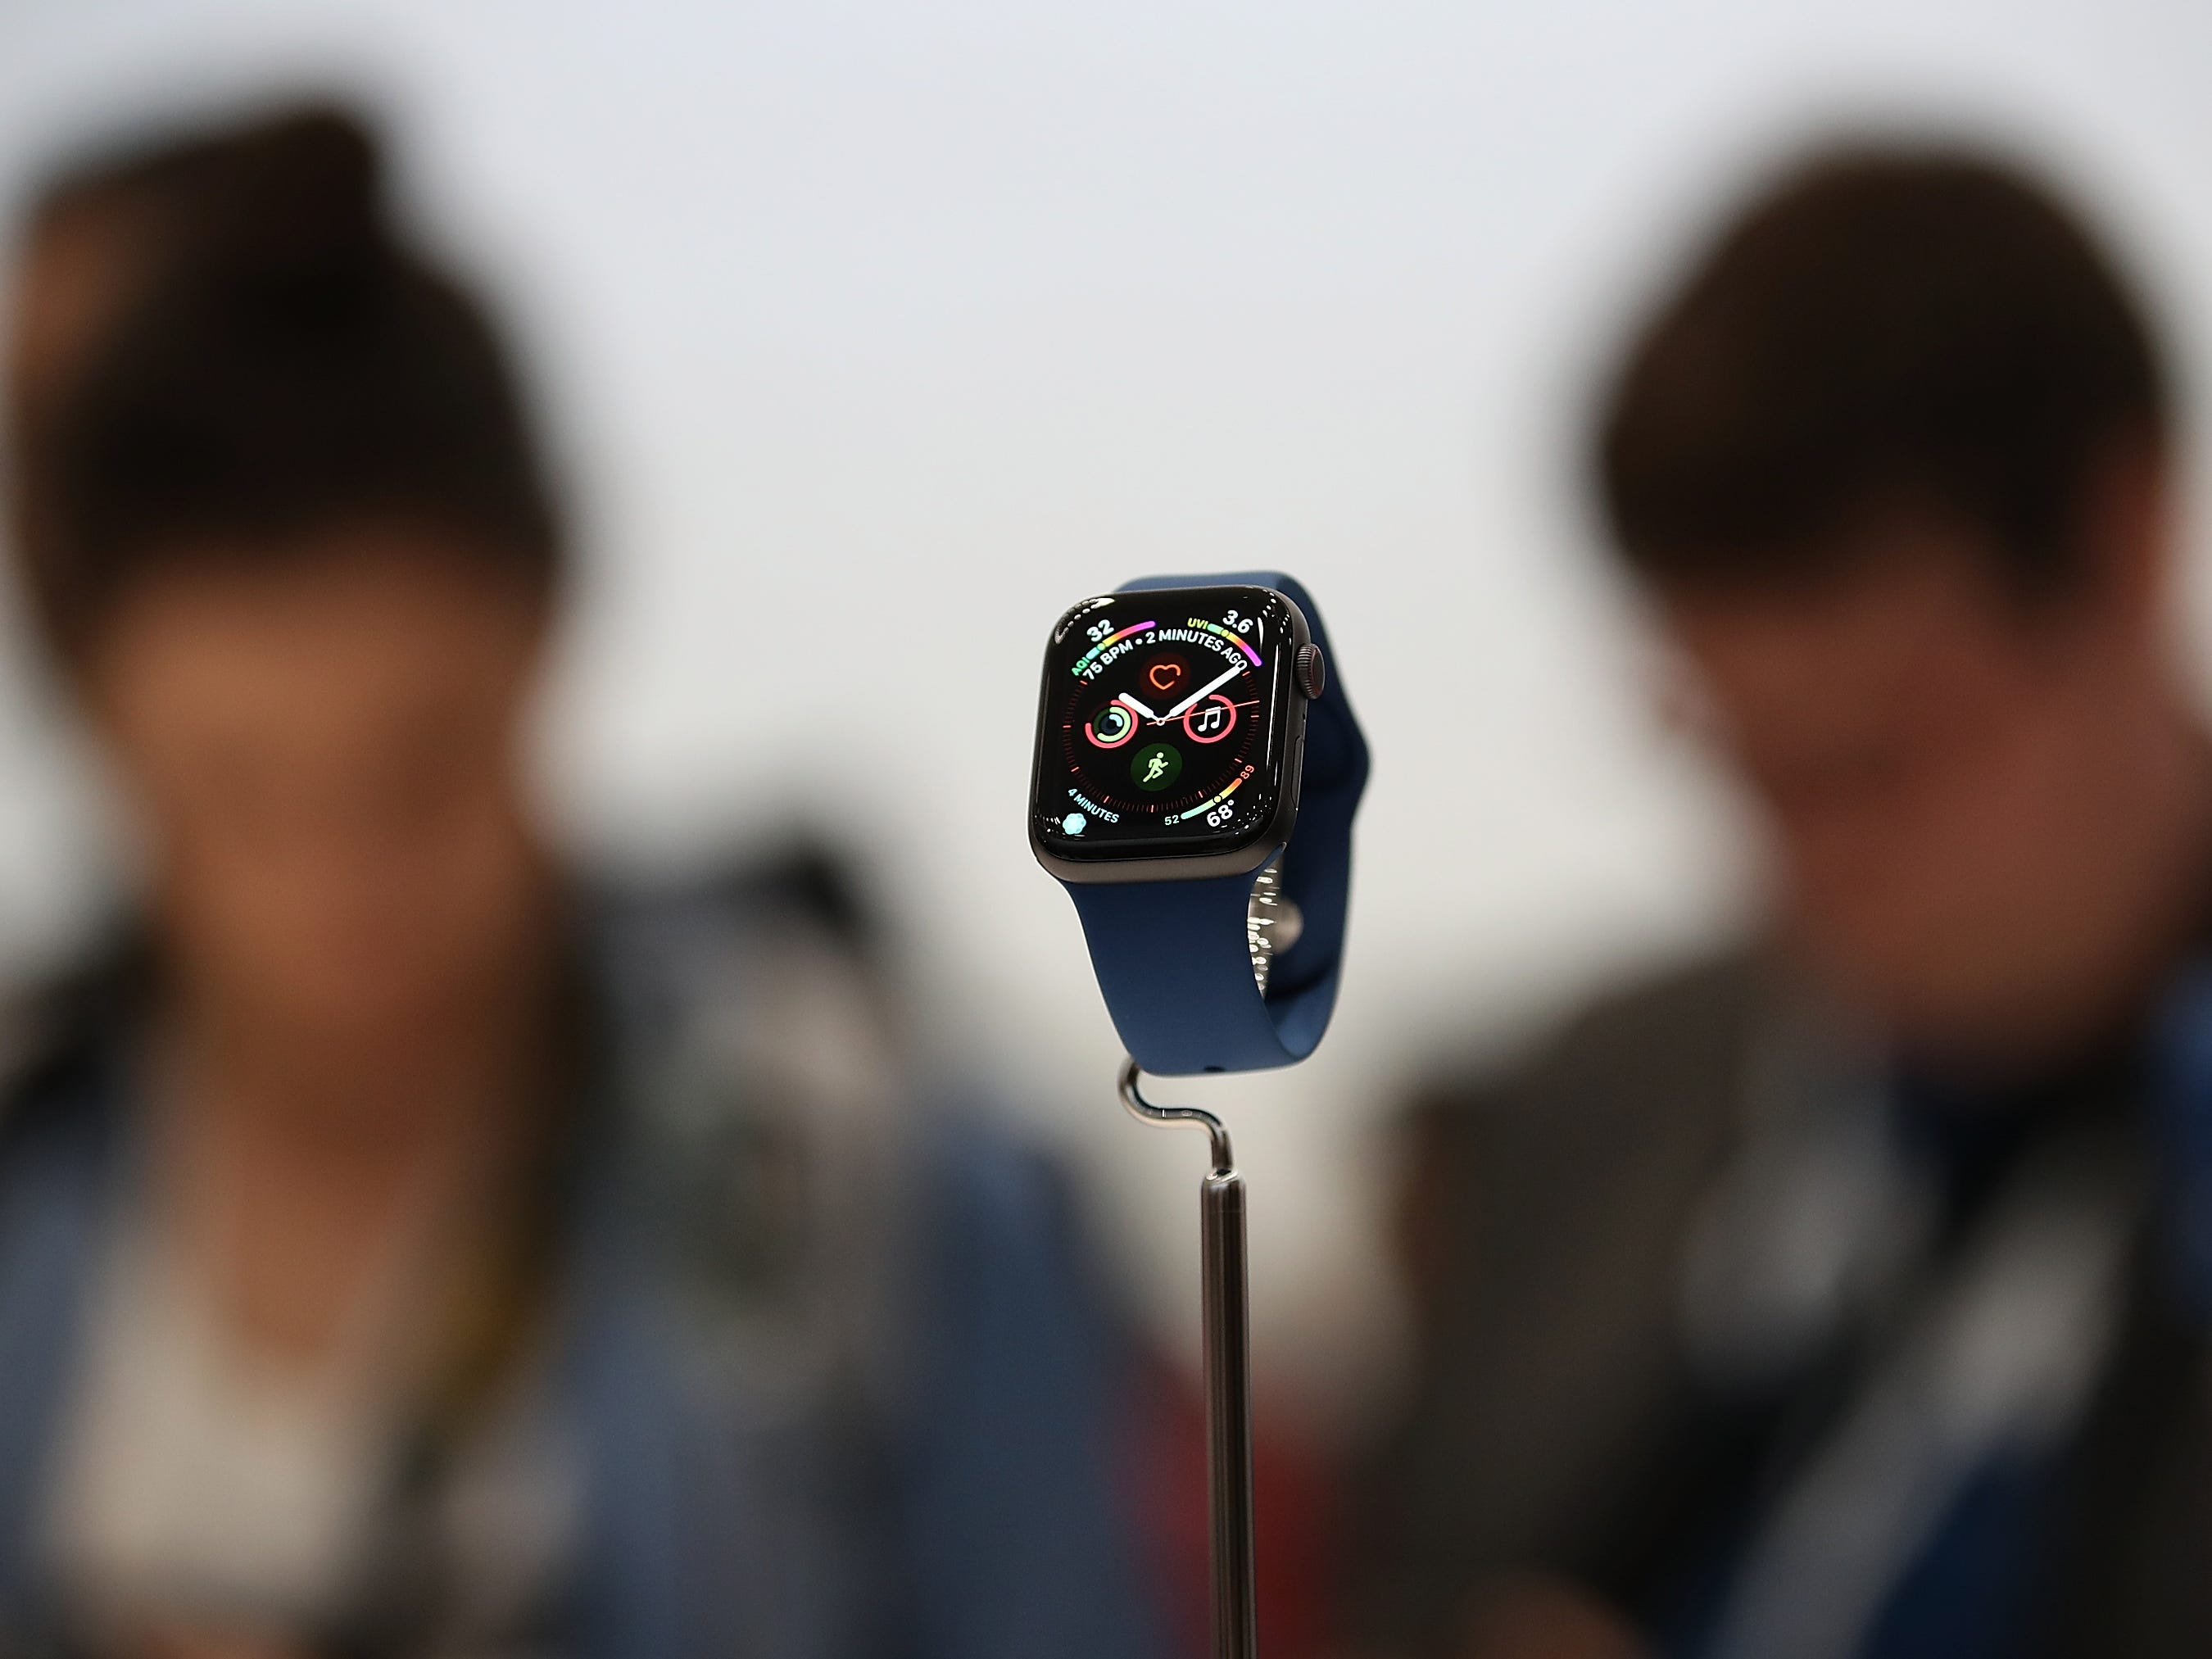 The new Apple Watch Series 4 is displayed during an Apple special event at the Steve Jobs Theatre on Sept. 12, 2018, in Cupertino, Calif.